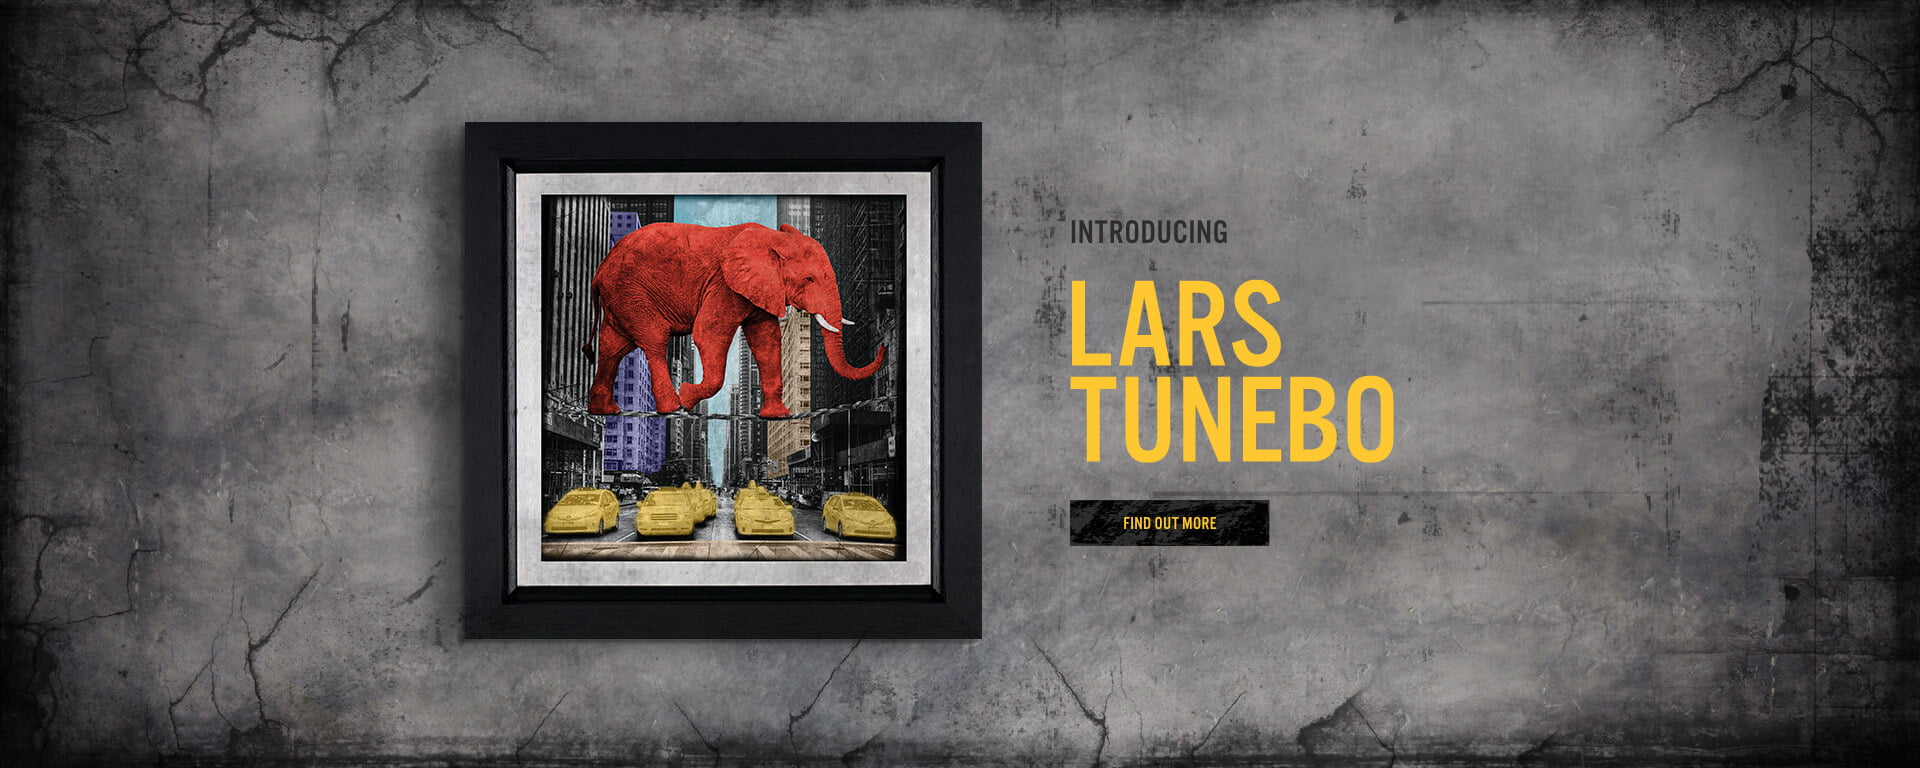 Introducing Lars Tunebo